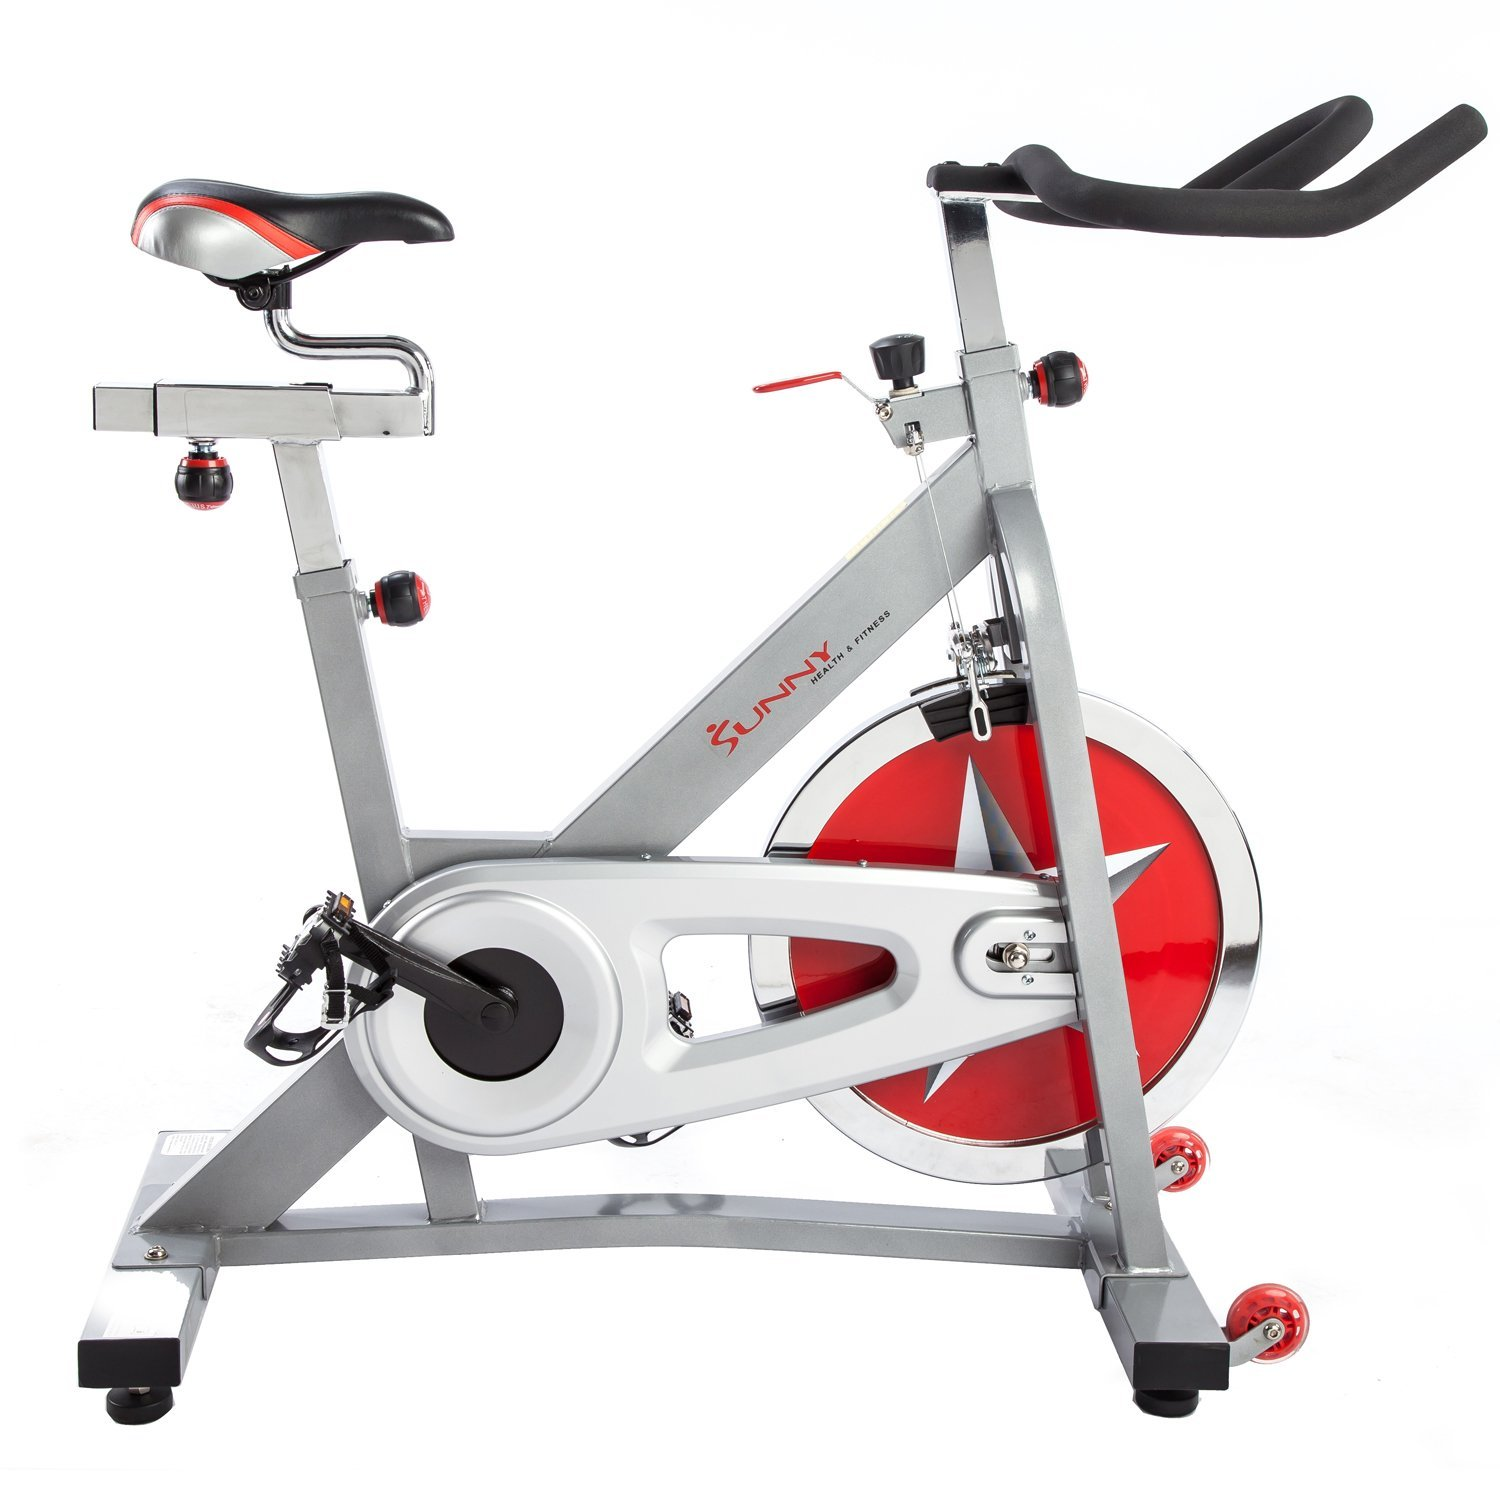 Sunny Health & Fitness Pro Indoor Spin Bike